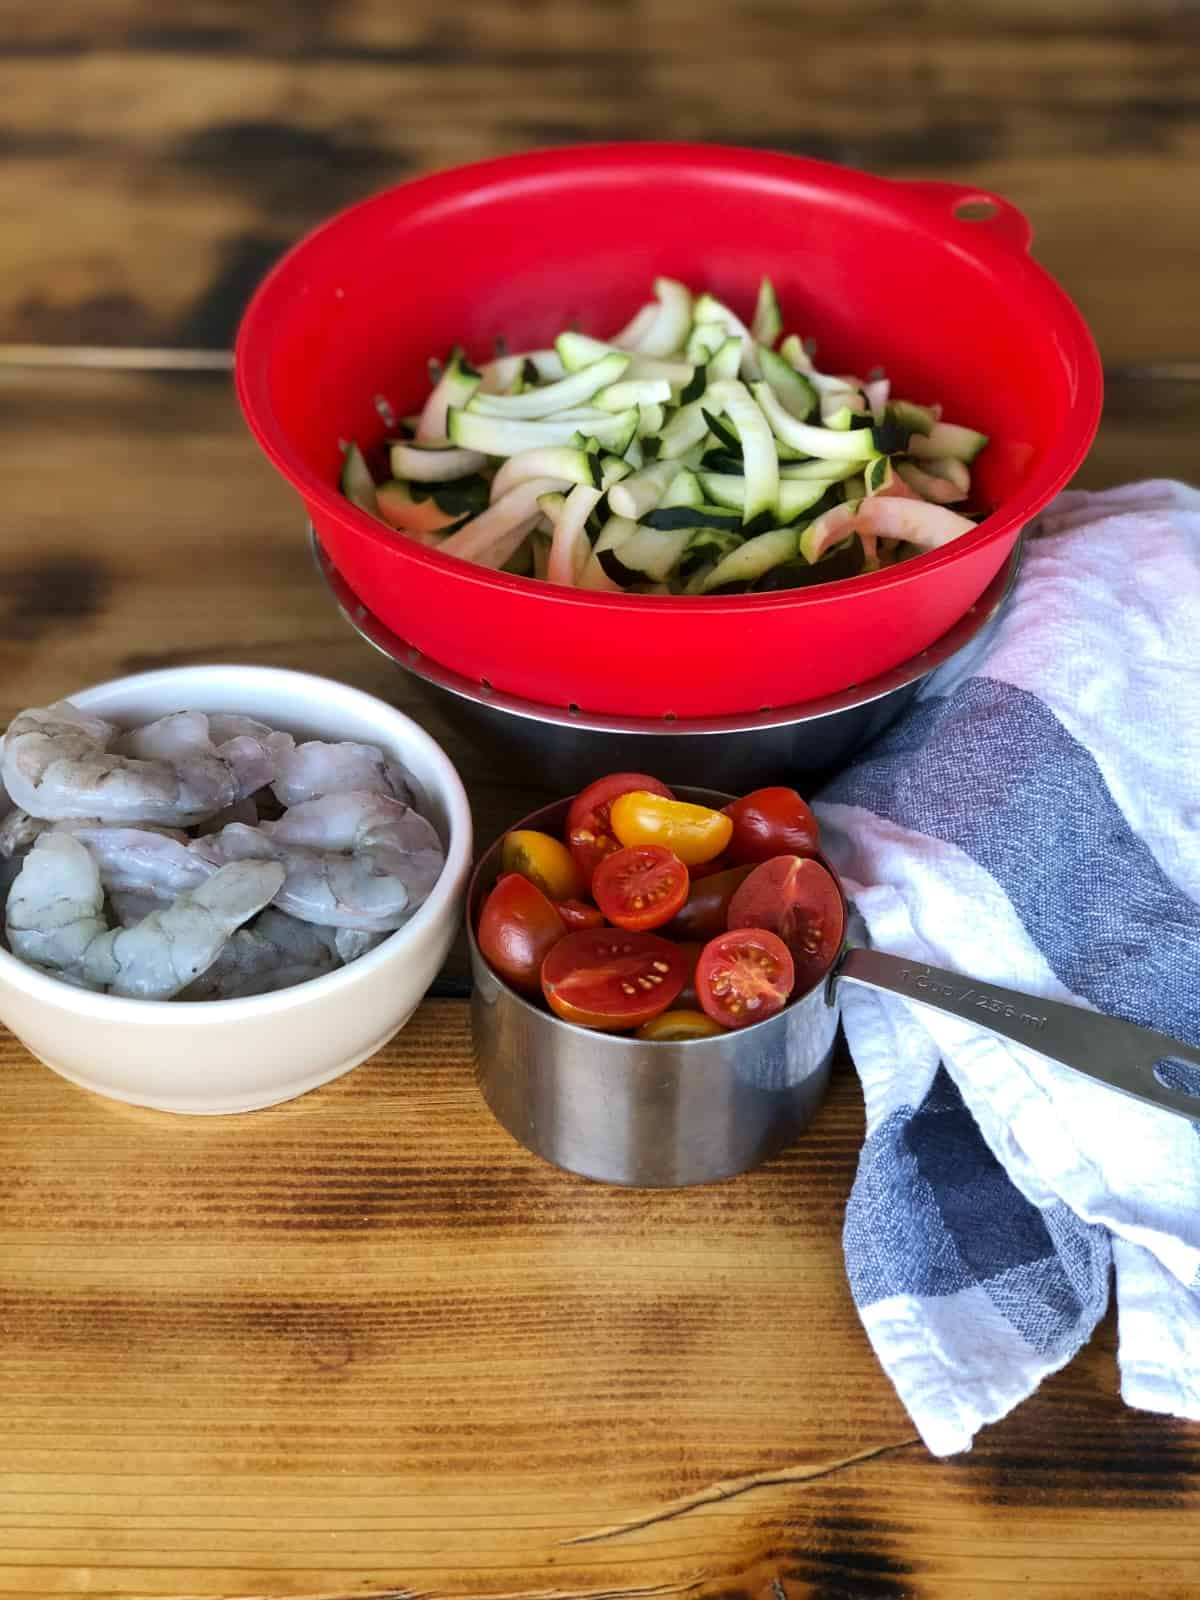 Sliced zucchini in red colander, raw shrimp and chopped tomatoes on wooden table.